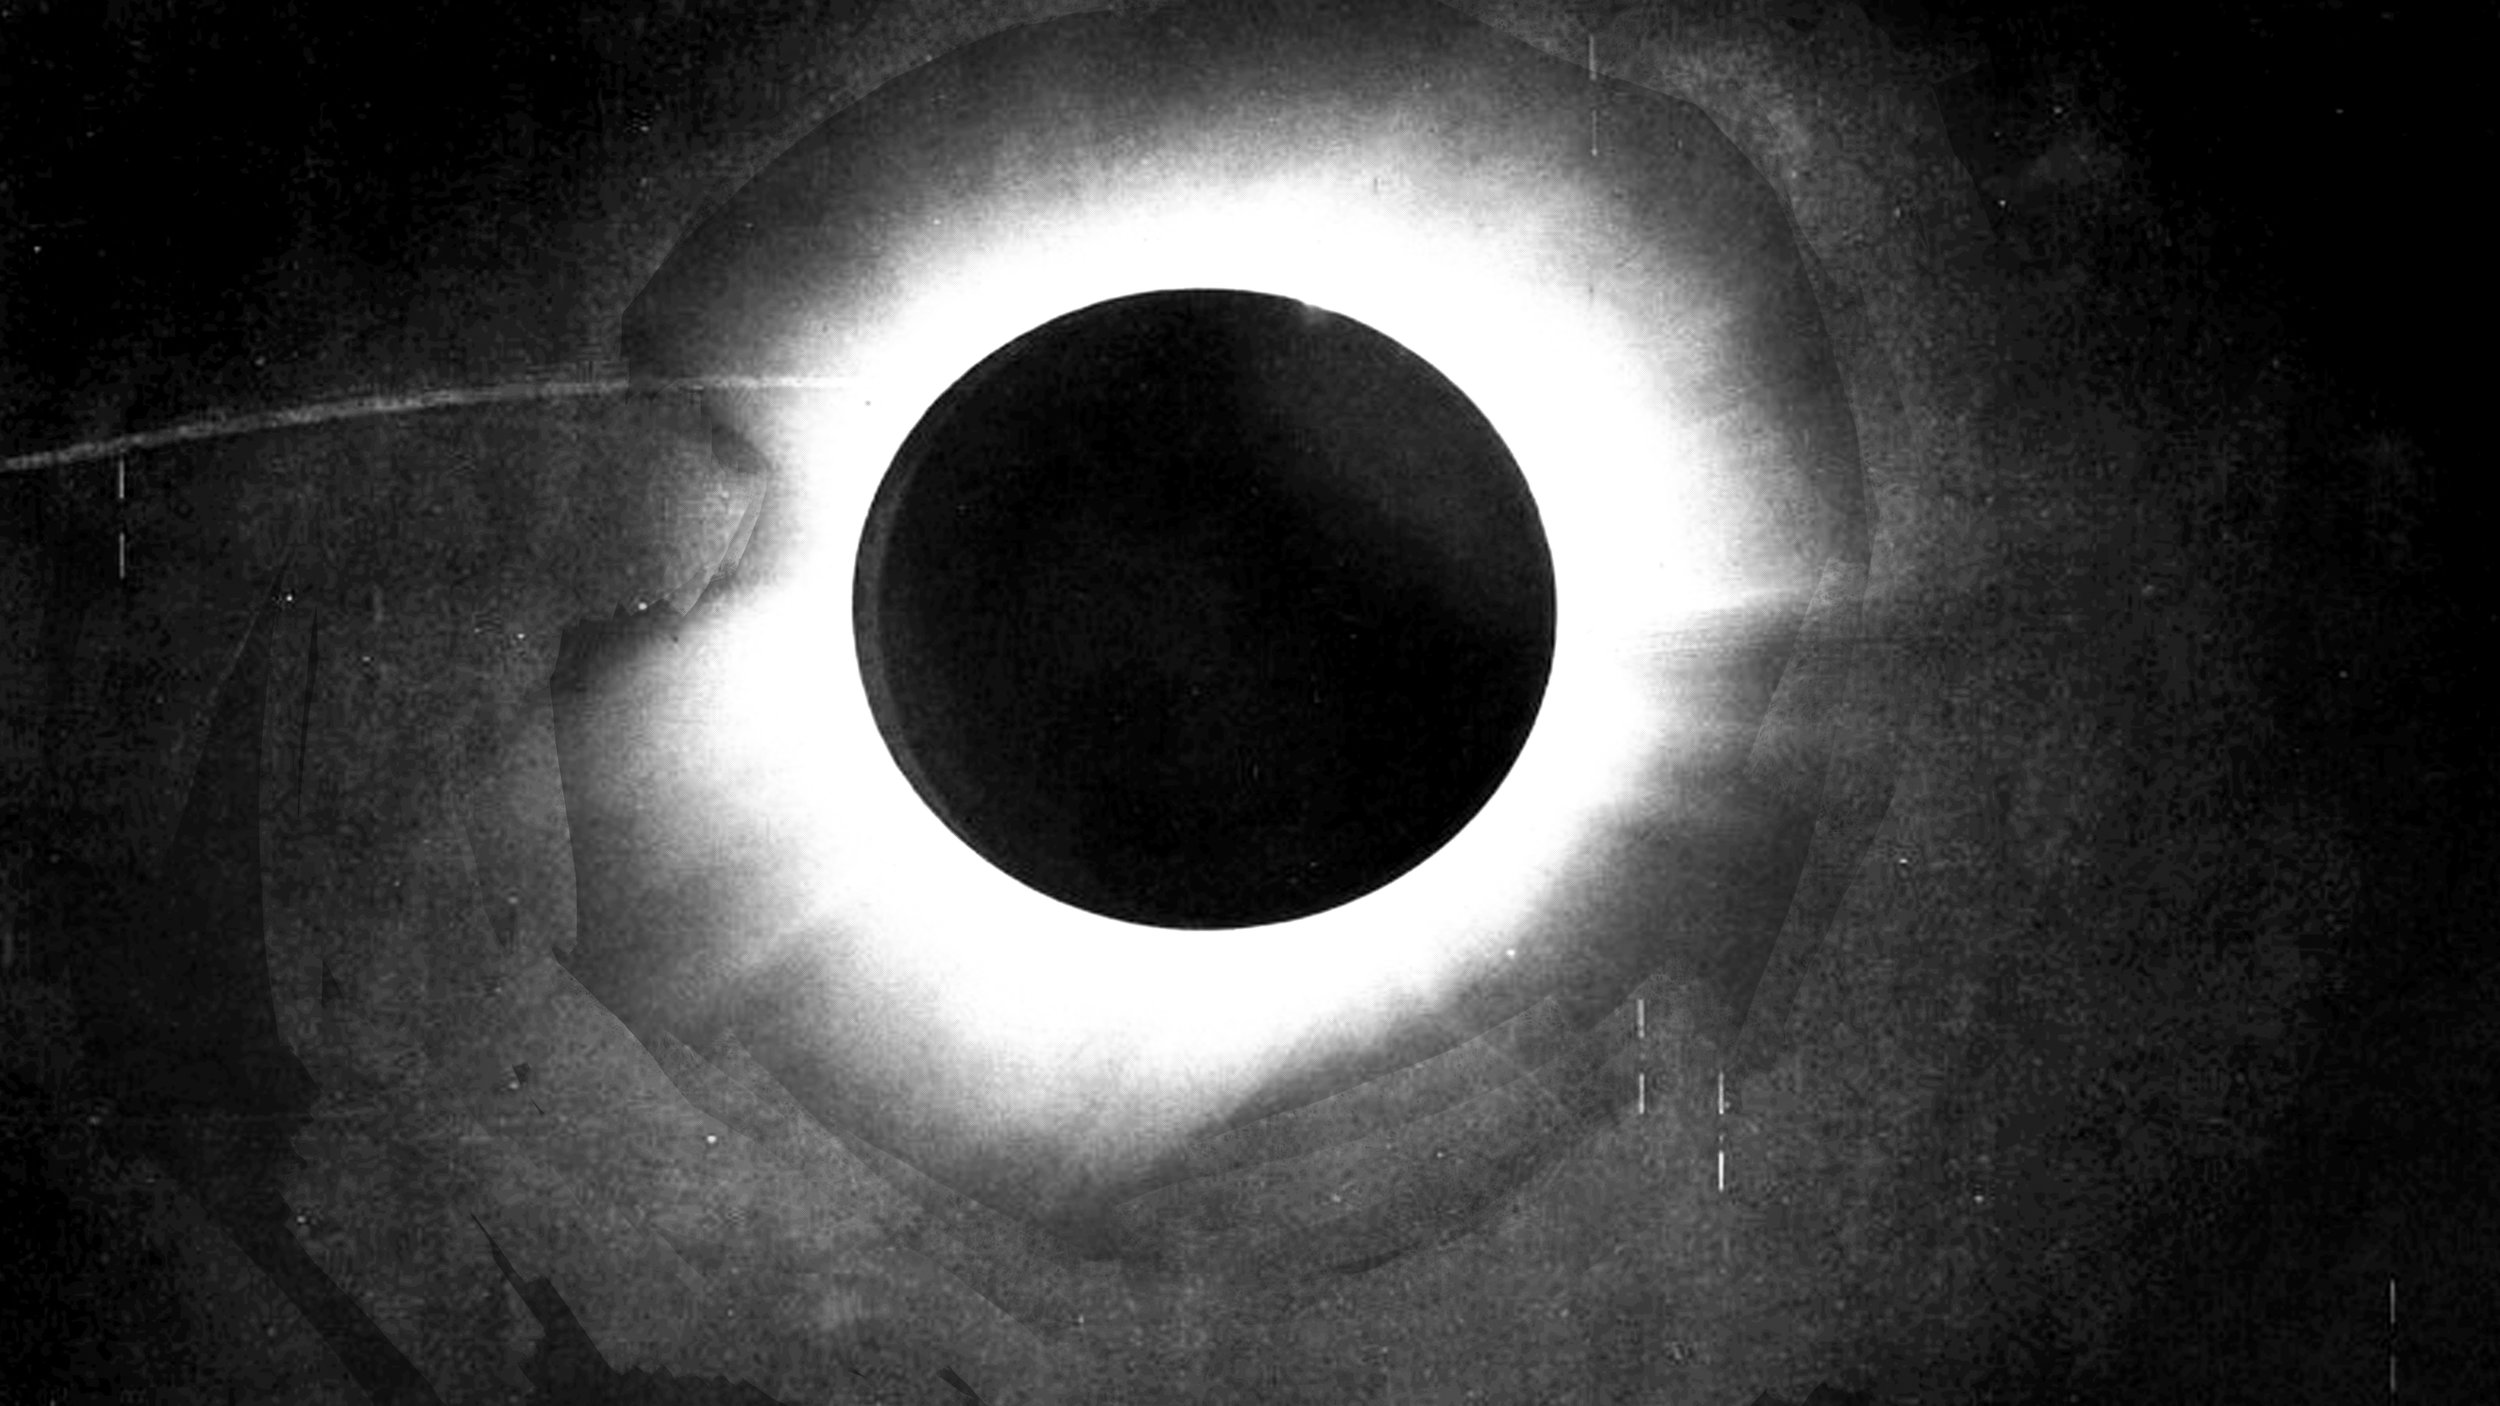 EXT. Outer Space The TZ logo dissolves to show the Sun being eclipsed by the moon.